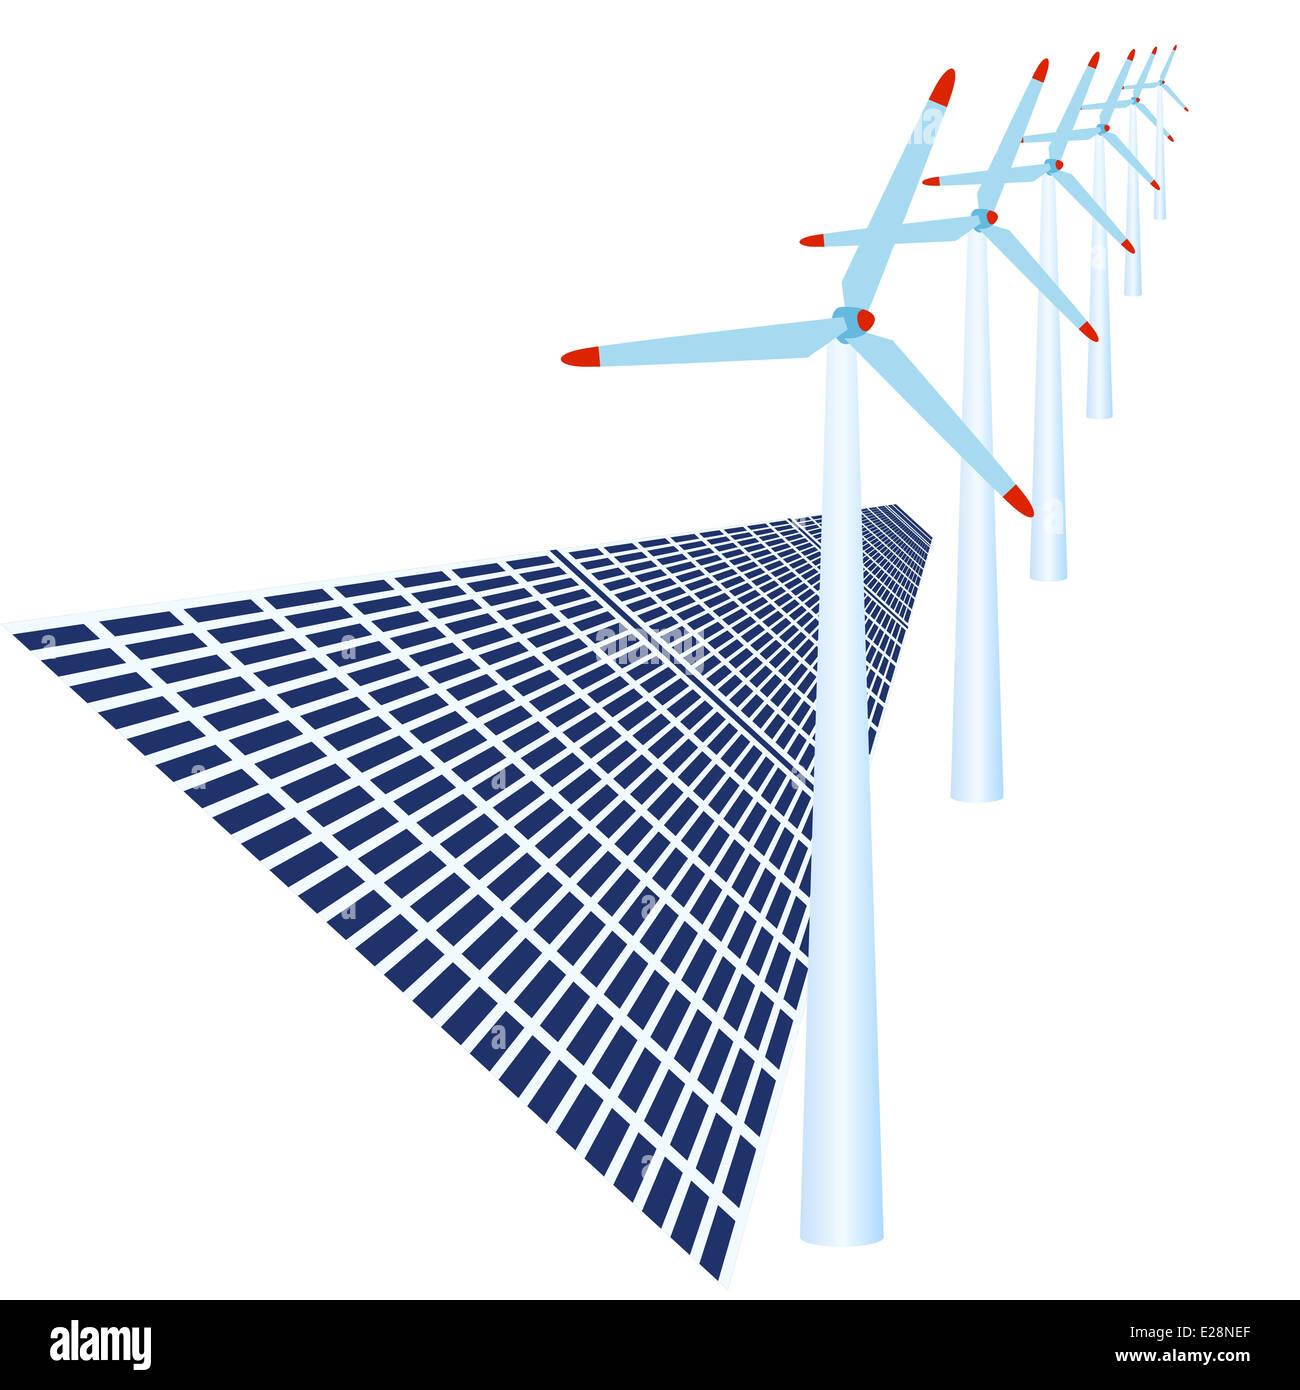 Solar Panels And Wind Power To Generate Electricity Illustration On Generating Diagram White Background